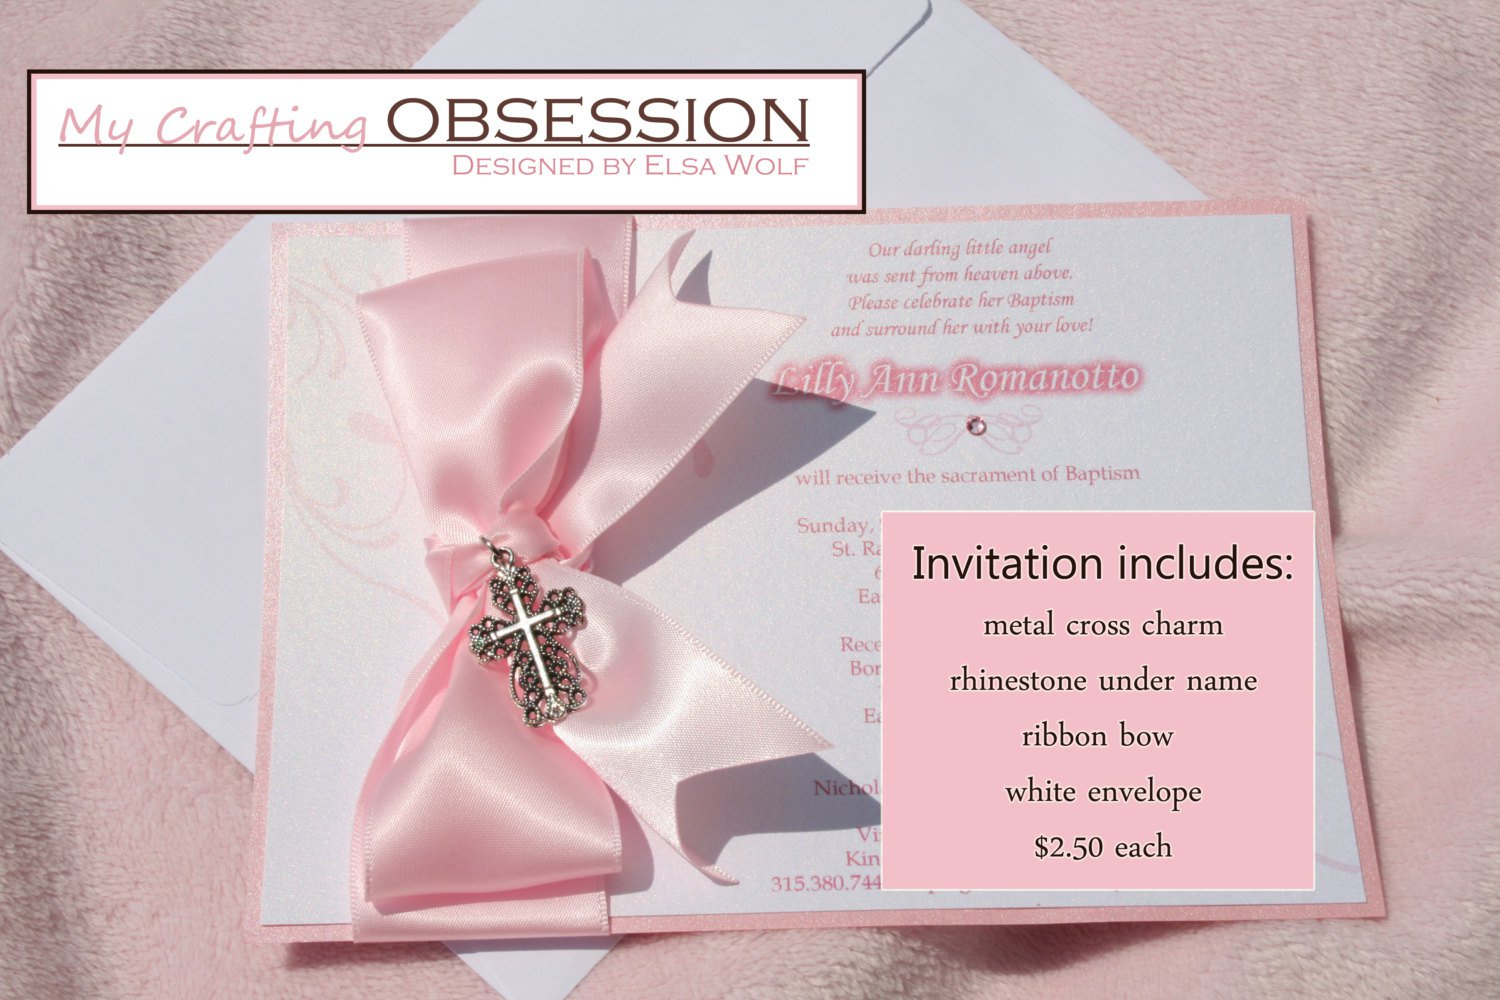 Handmade Invitation Card